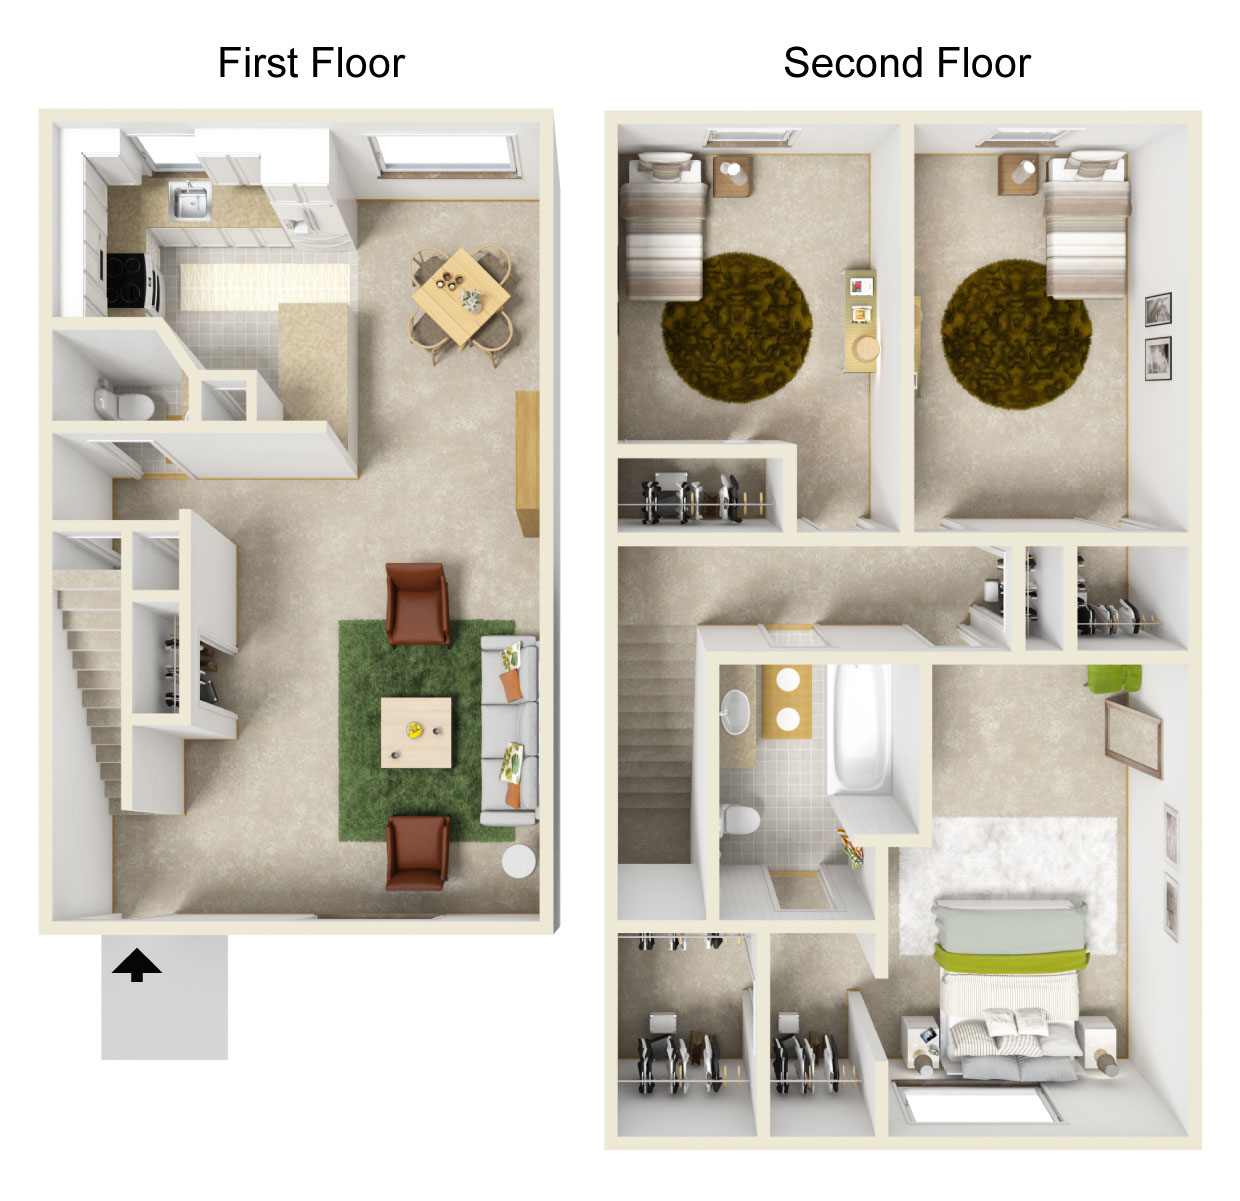 3 bedroom apartments rochester ny park ave sungha jung bedro picture on  with 3 bedroom apartments - 3 Bedroom Apartments Rochester Ny Laytonutah Home Design